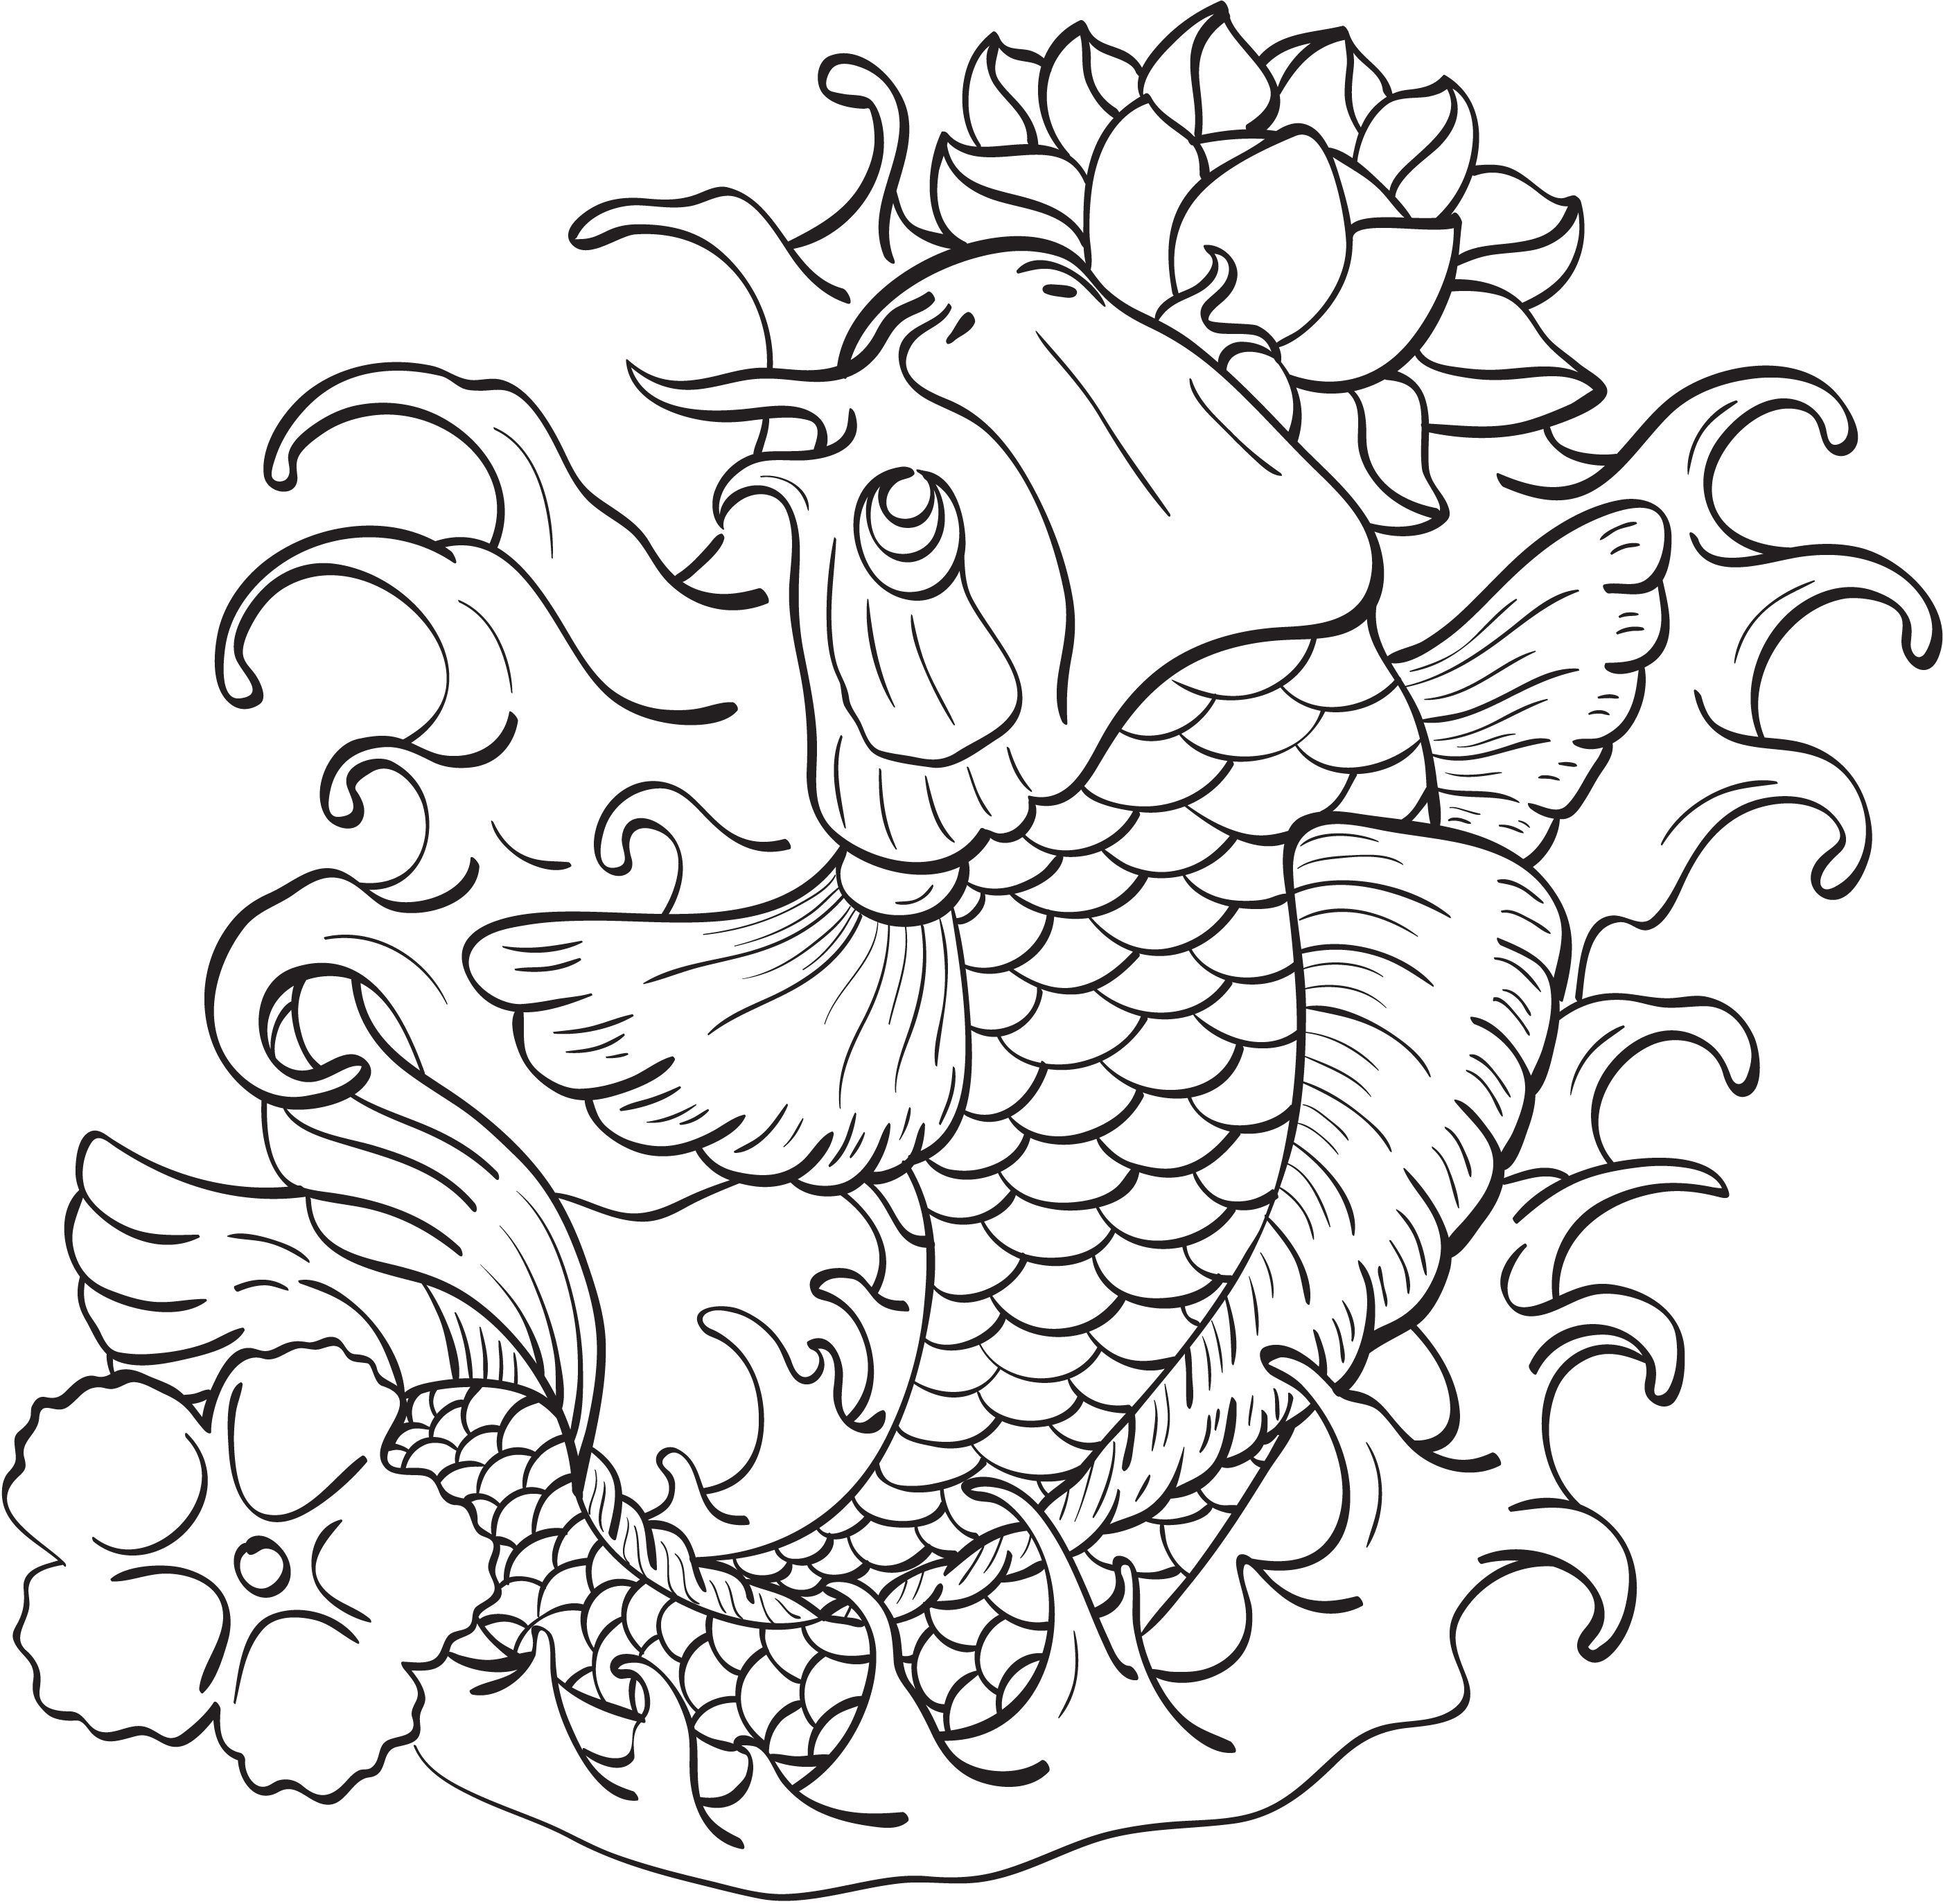 ying yang koi fish tattoos koi fish tattoos u2013 meaning